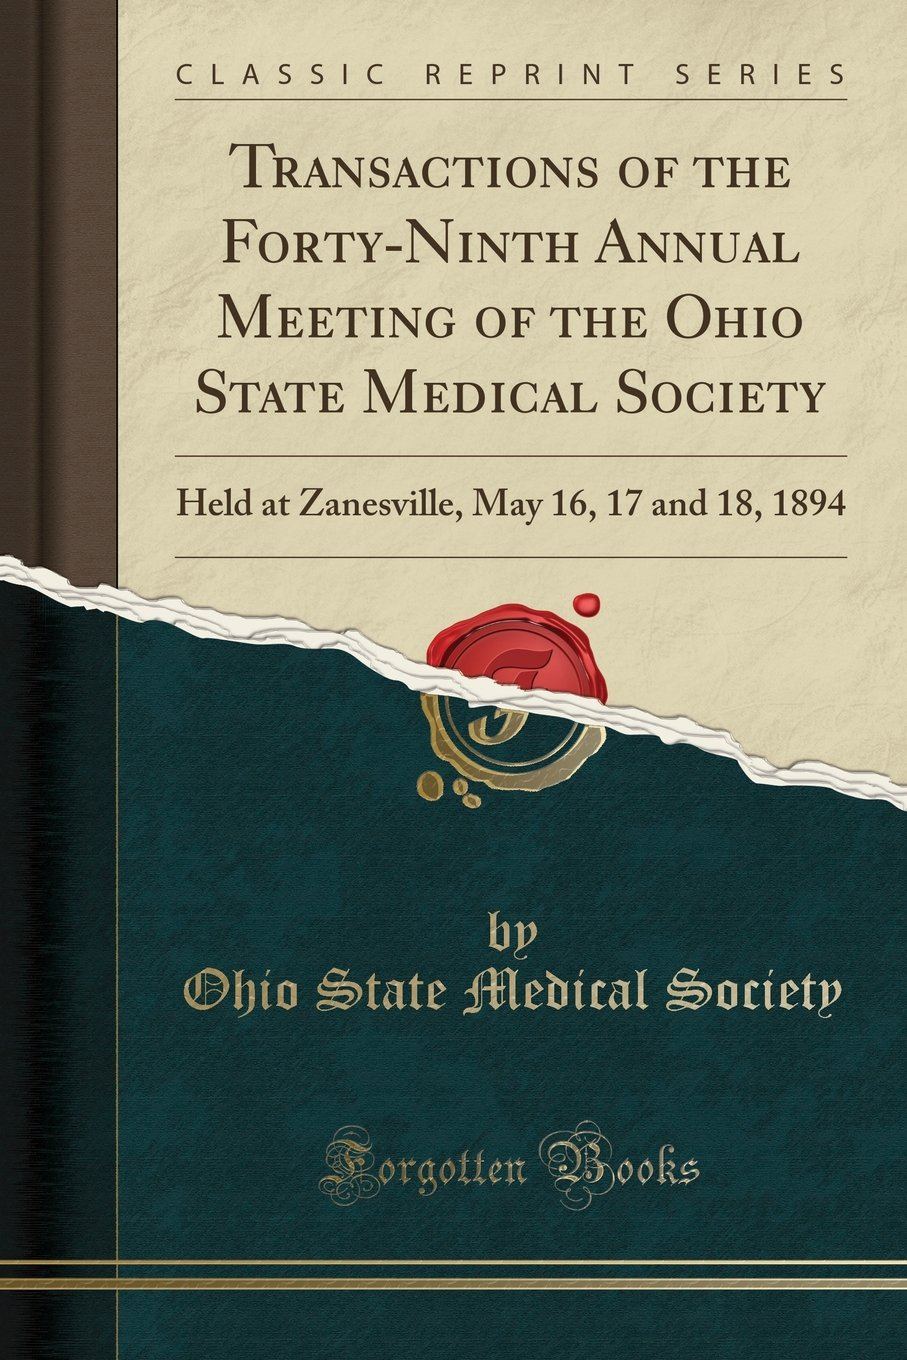 Download Transactions of the Forty-Ninth Annual Meeting of the Ohio State Medical Society: Held at Zanesville, May 16, 17 and 18, 1894 (Classic Reprint) pdf epub